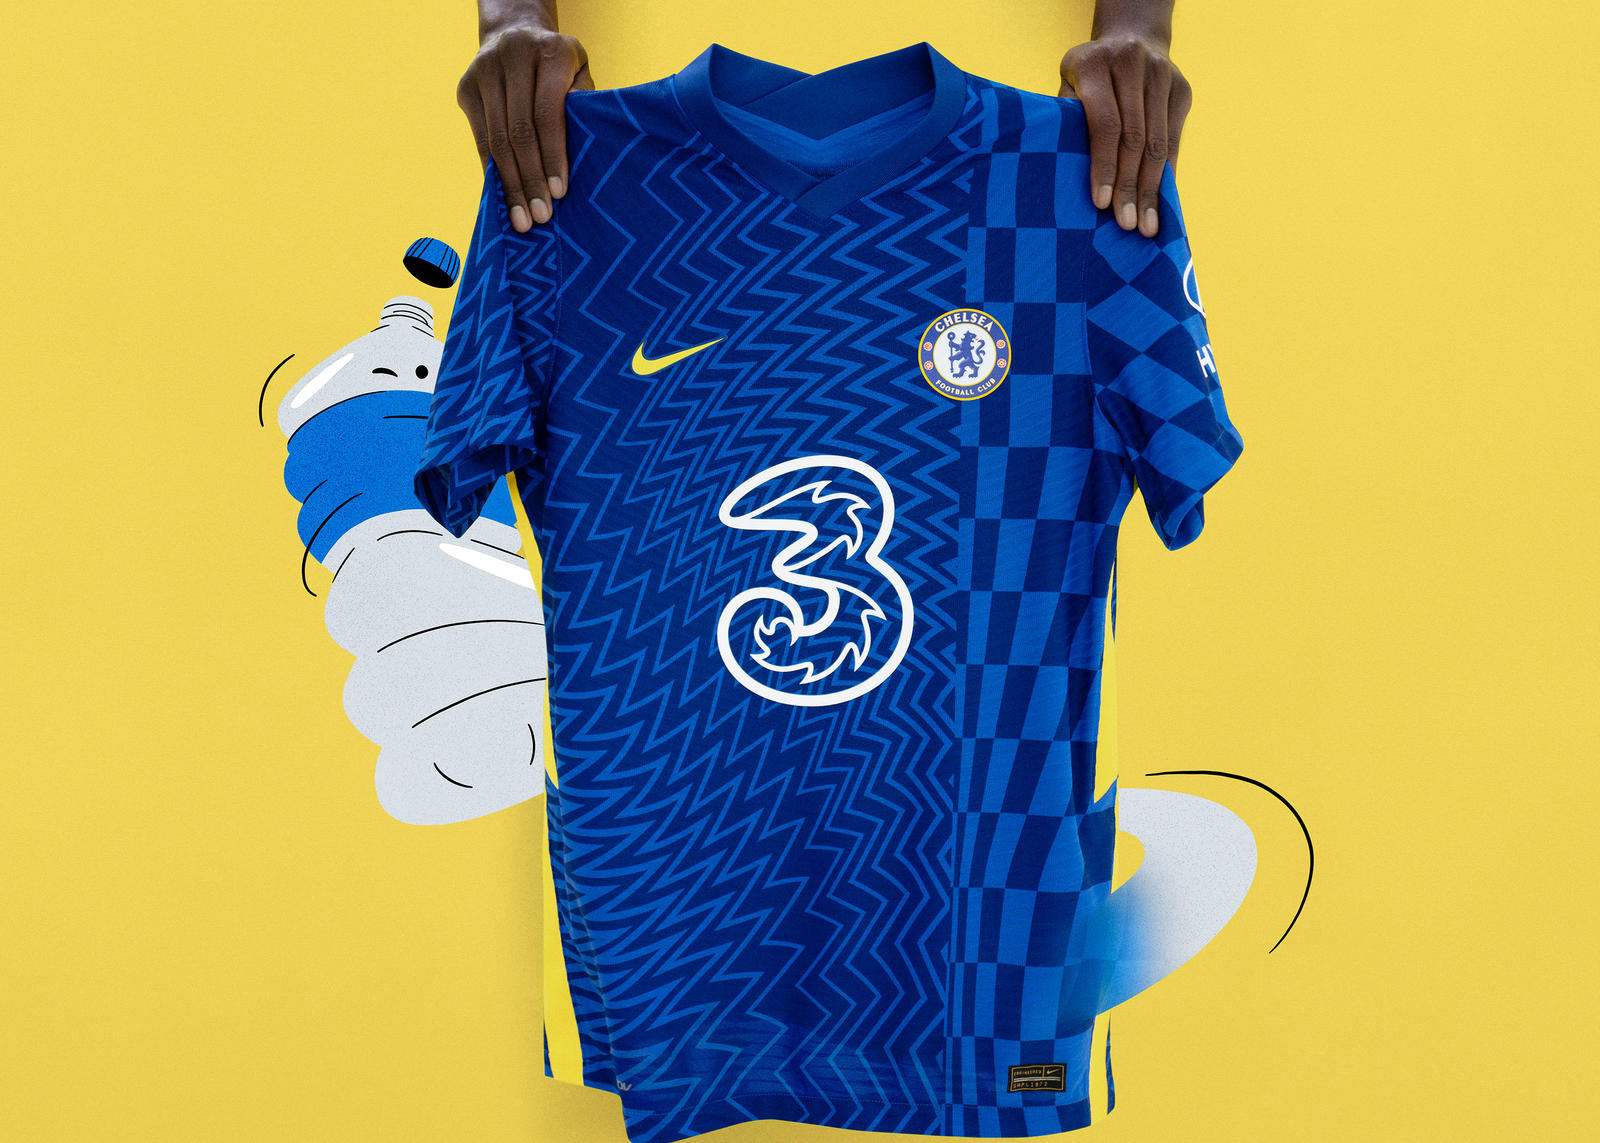 Chelsea 2021-2022 home kit official images release date - Nike News